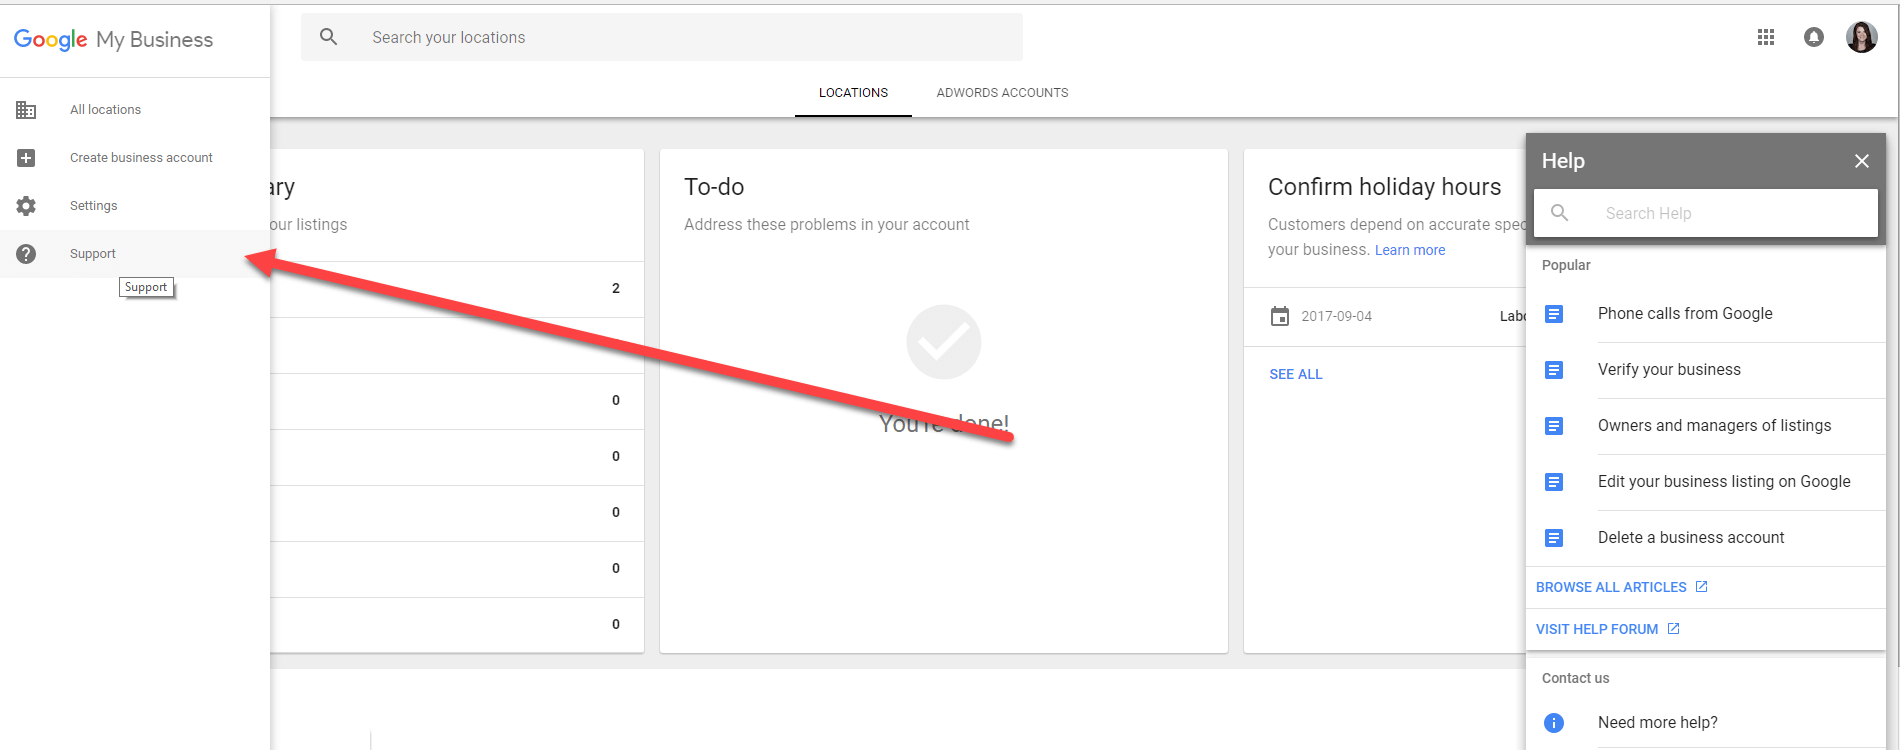 Google My Business Support